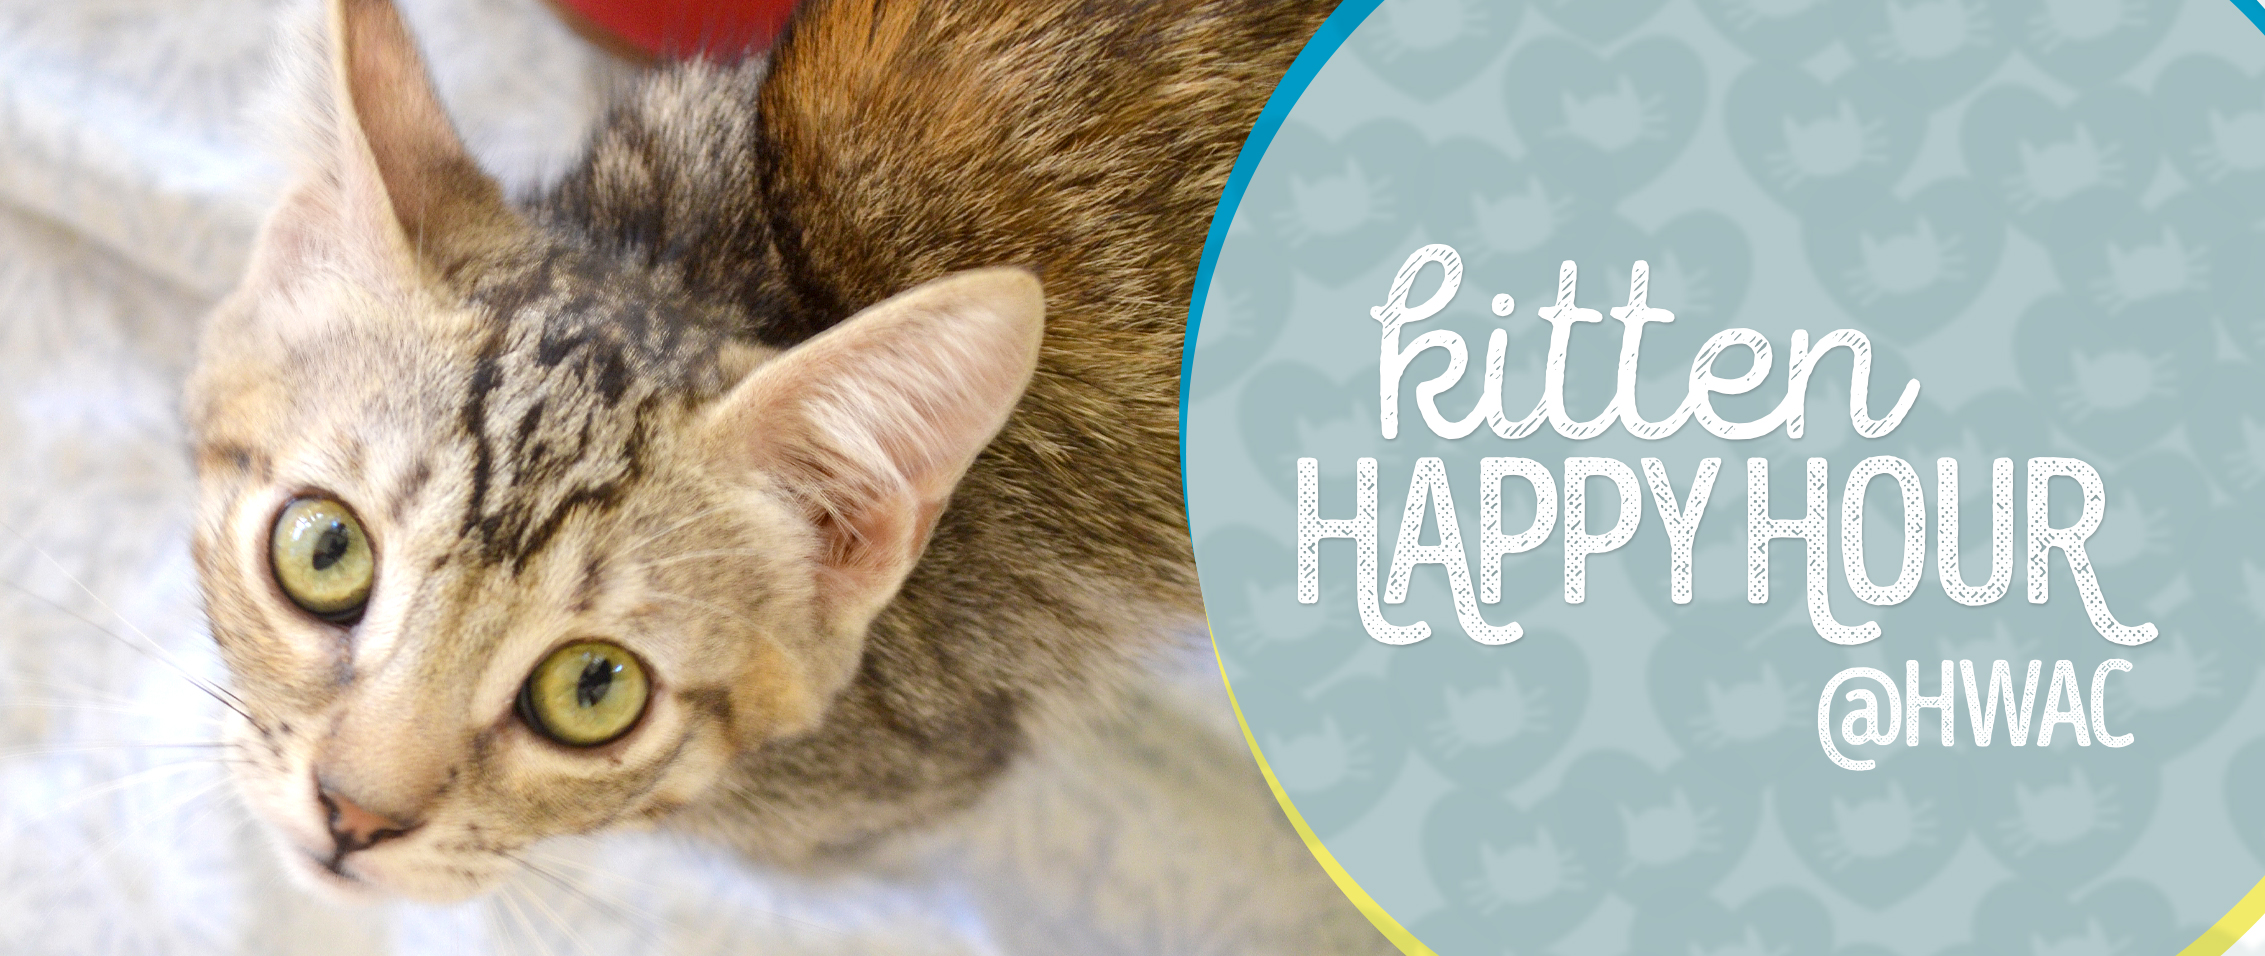 Kitten Adoption San Diego – Adopt a Kitten